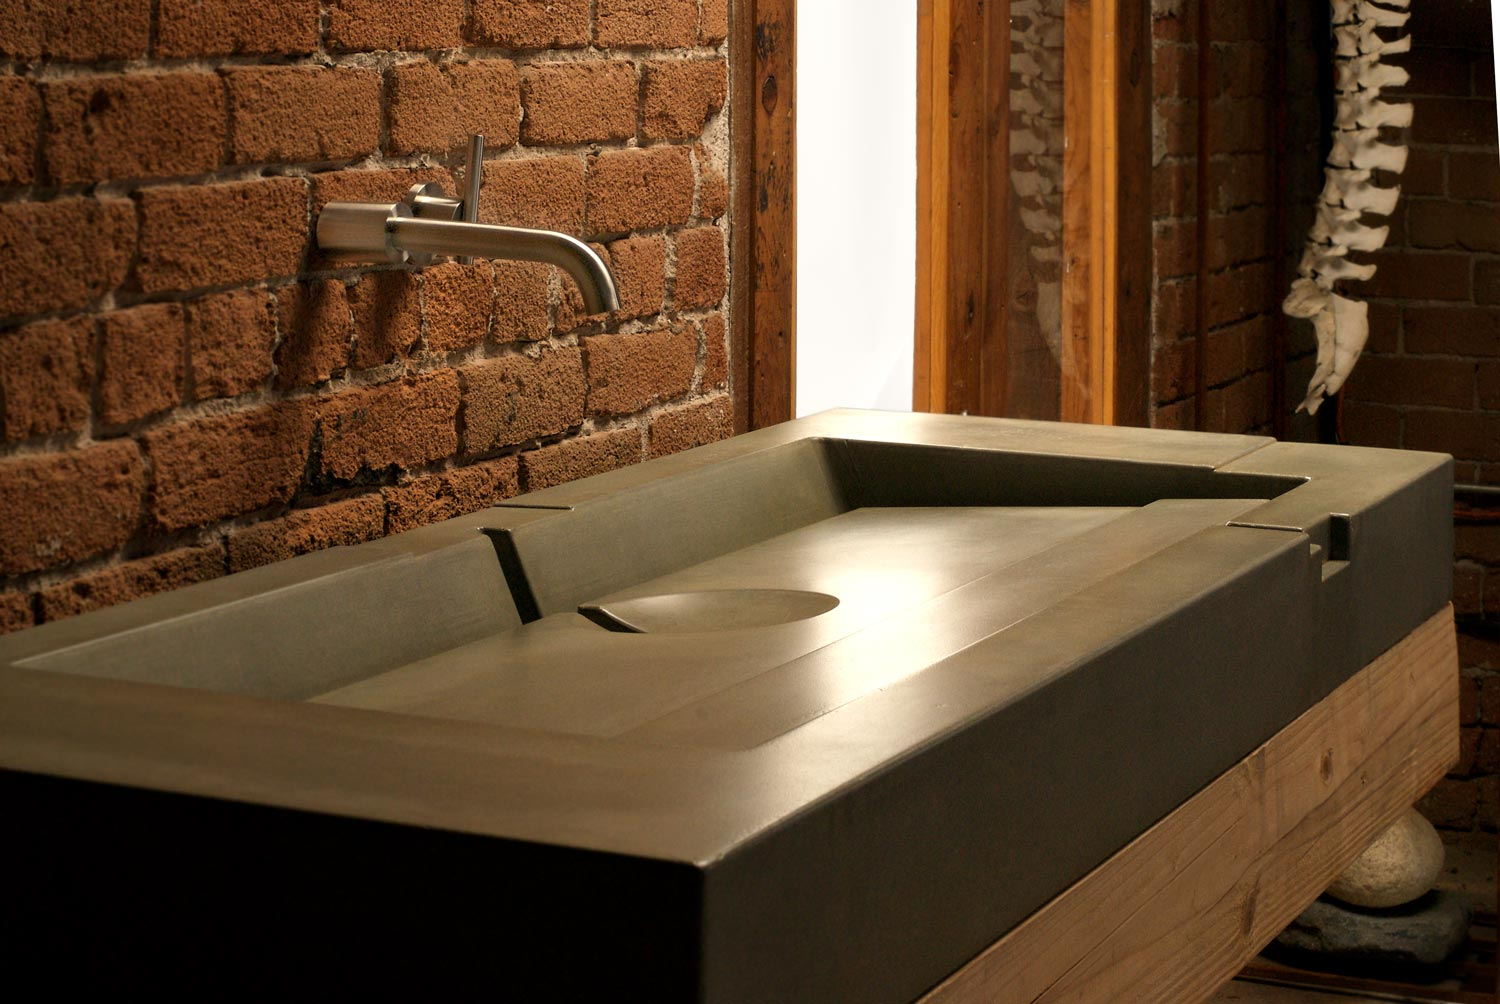 Custom concrete sink in natural grey concrete made of GFRC for a modern loft in Scottsdale, AZ